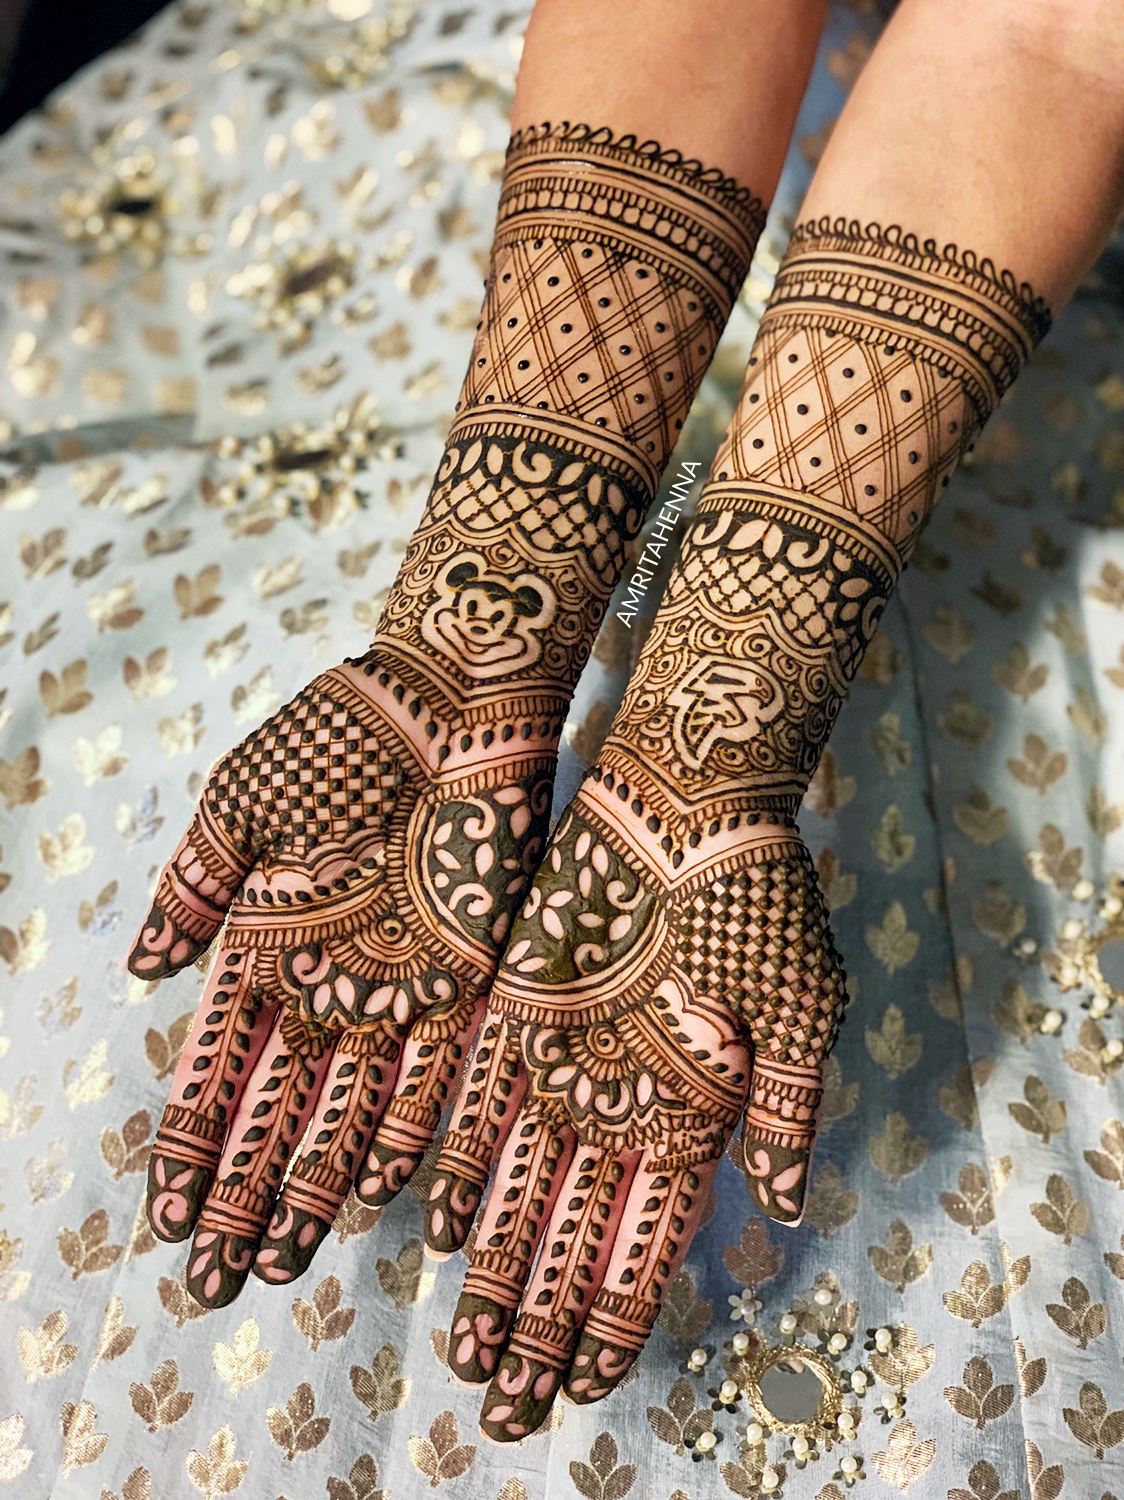 TOP 10 LATEST BRIDAL MEHNDI TRENDS FOR THIS WEDDING SEASON - 10 BEAUTIFUL BRIDAL MEHENDI DESIGNS 2019 - 10 BEST DULHAN MEHANDI DESIGNS FOR YOU